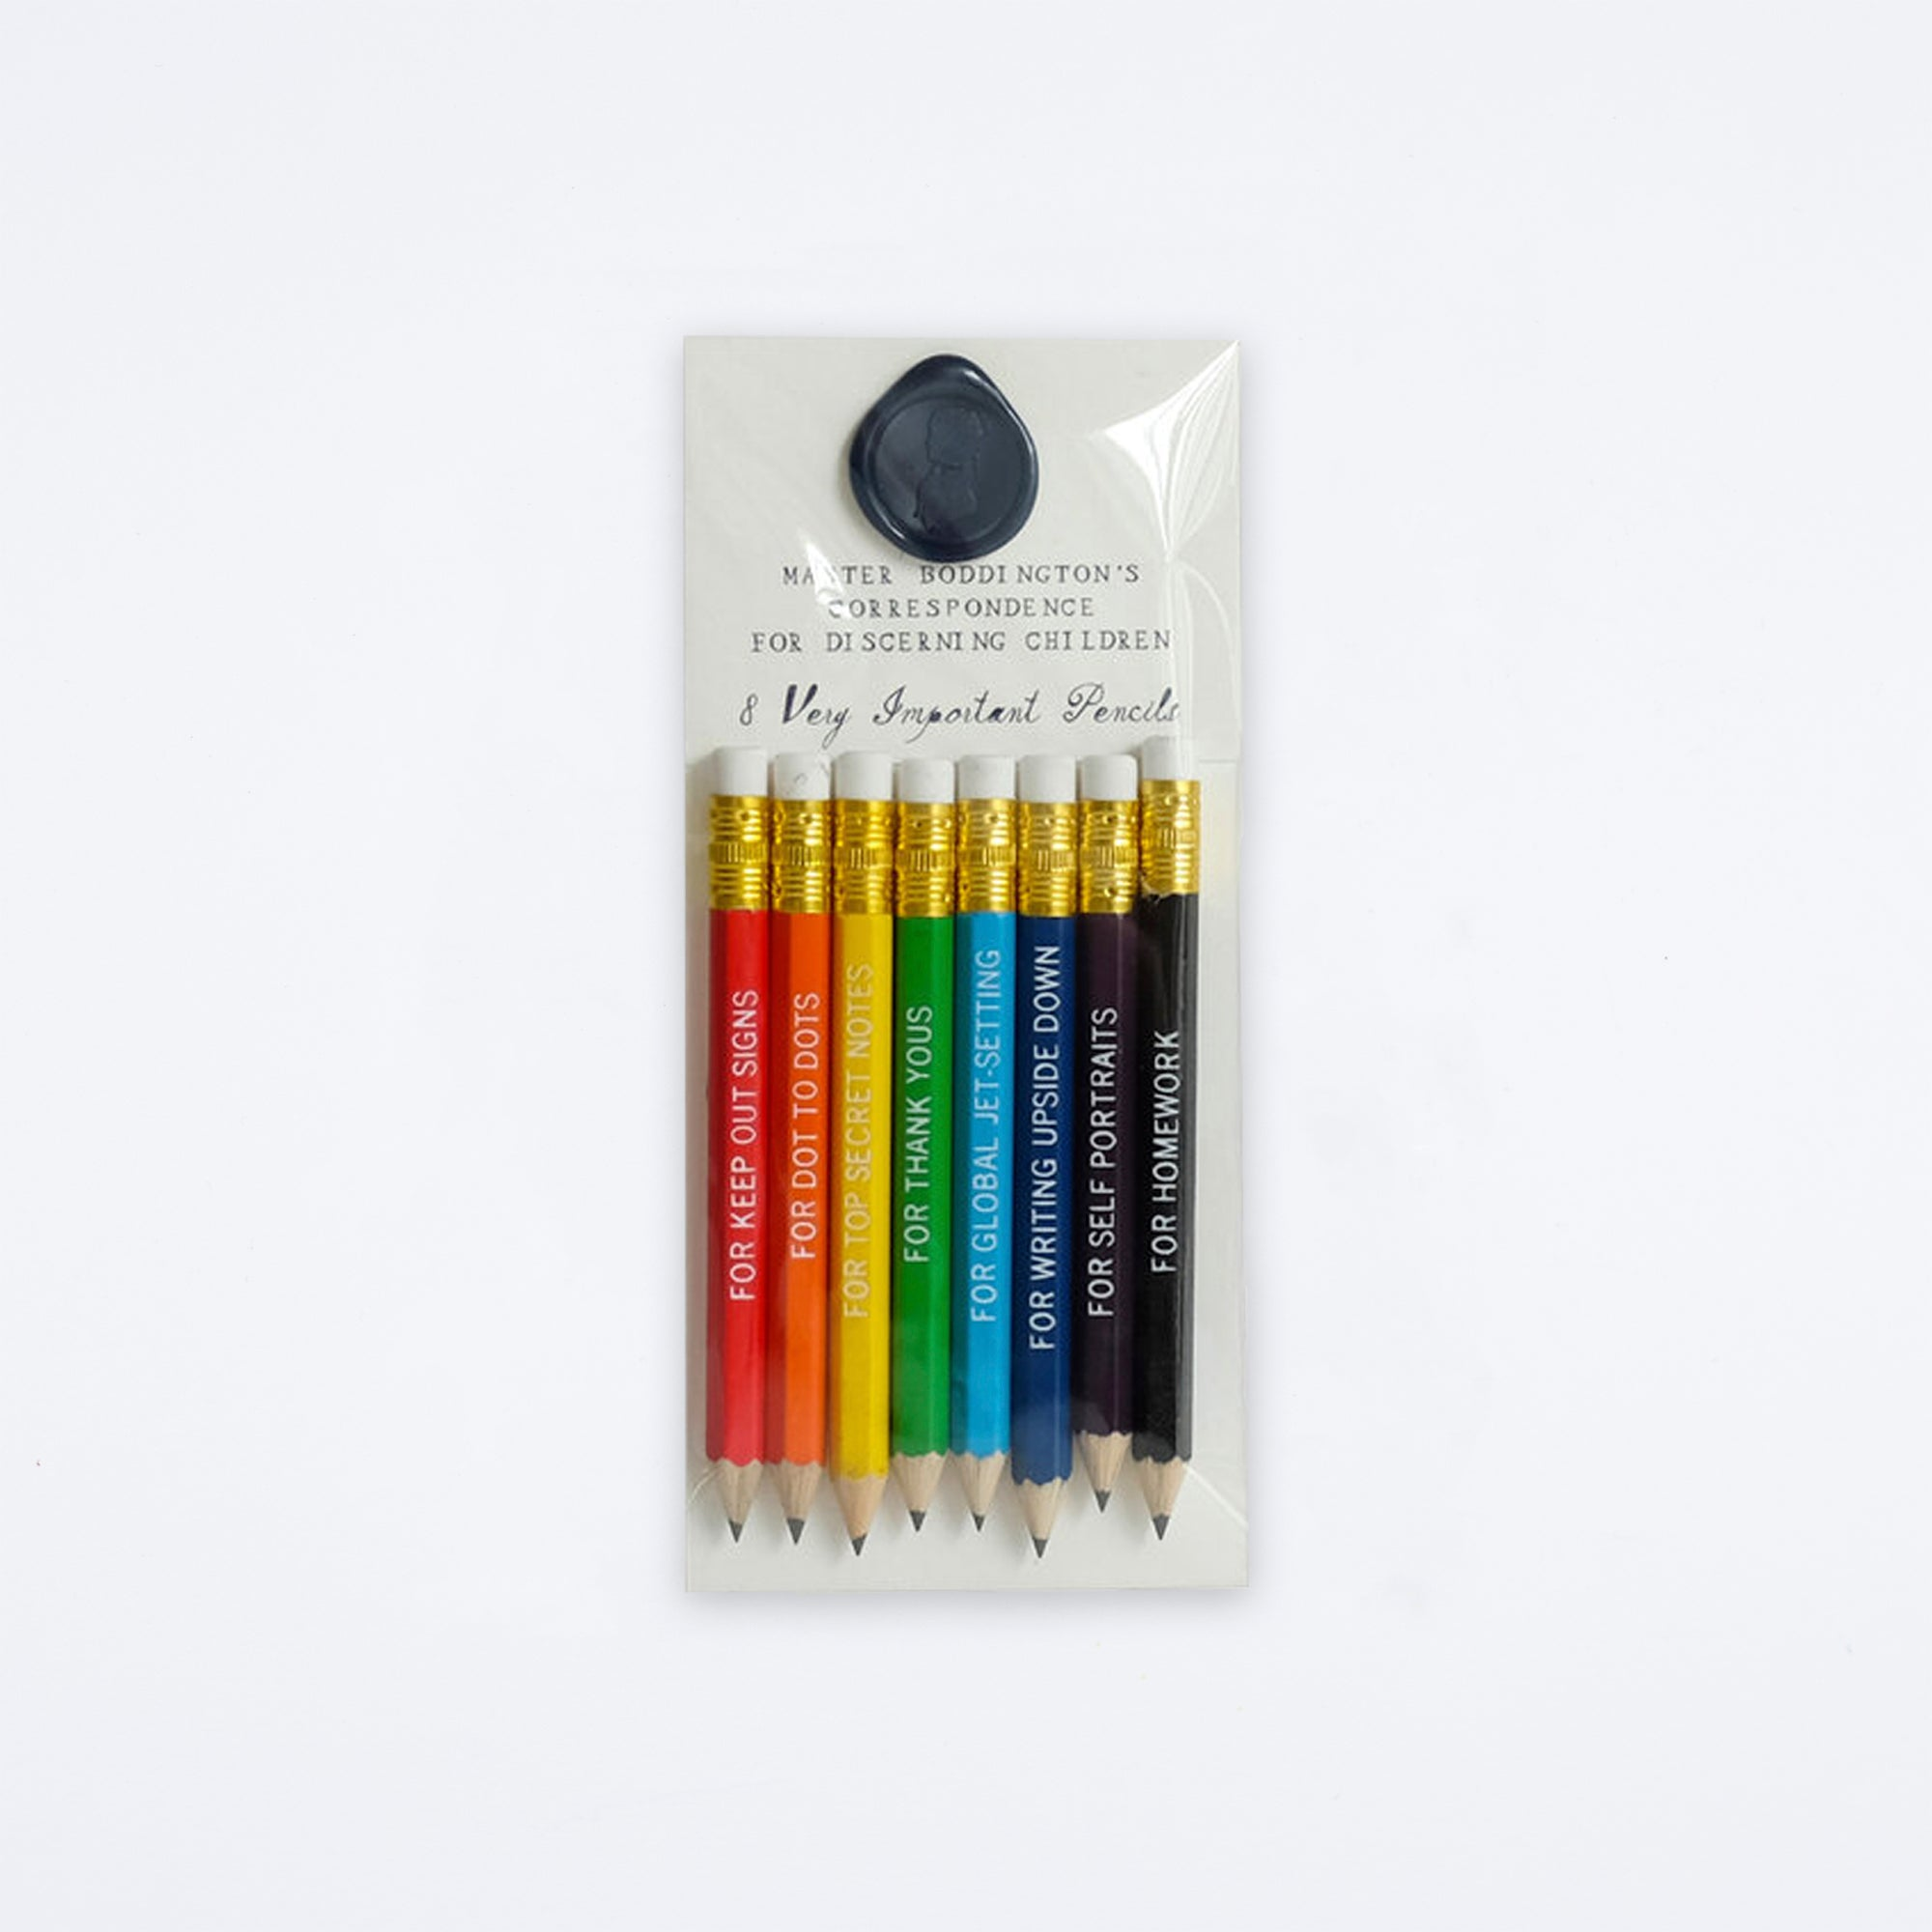 Correspondence Pencils for All Occasions